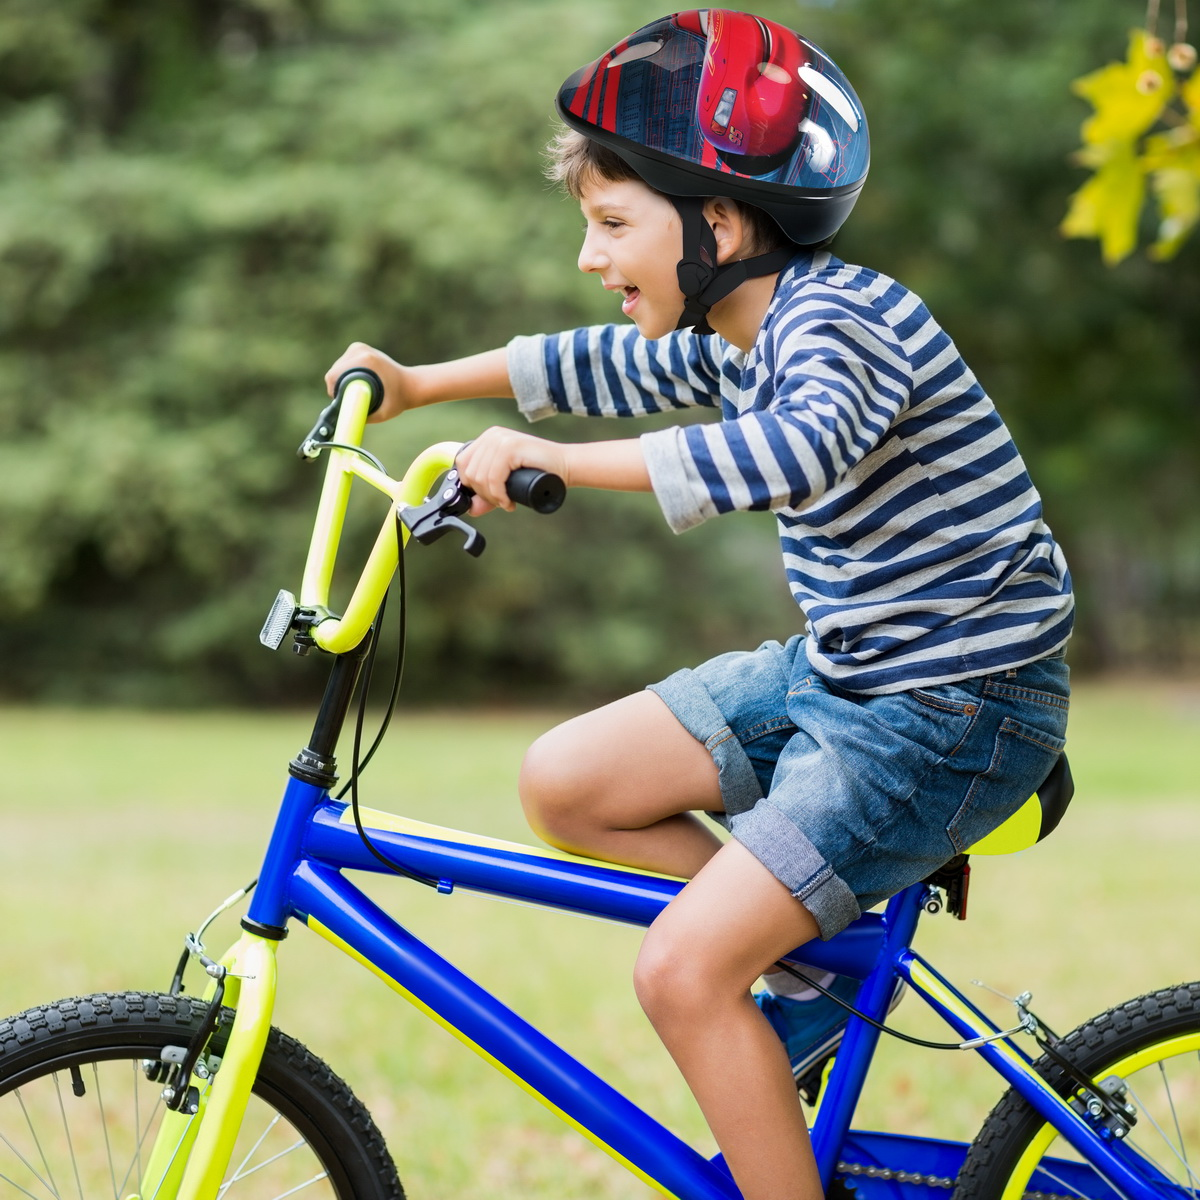 Smiling boy riding a bicycle